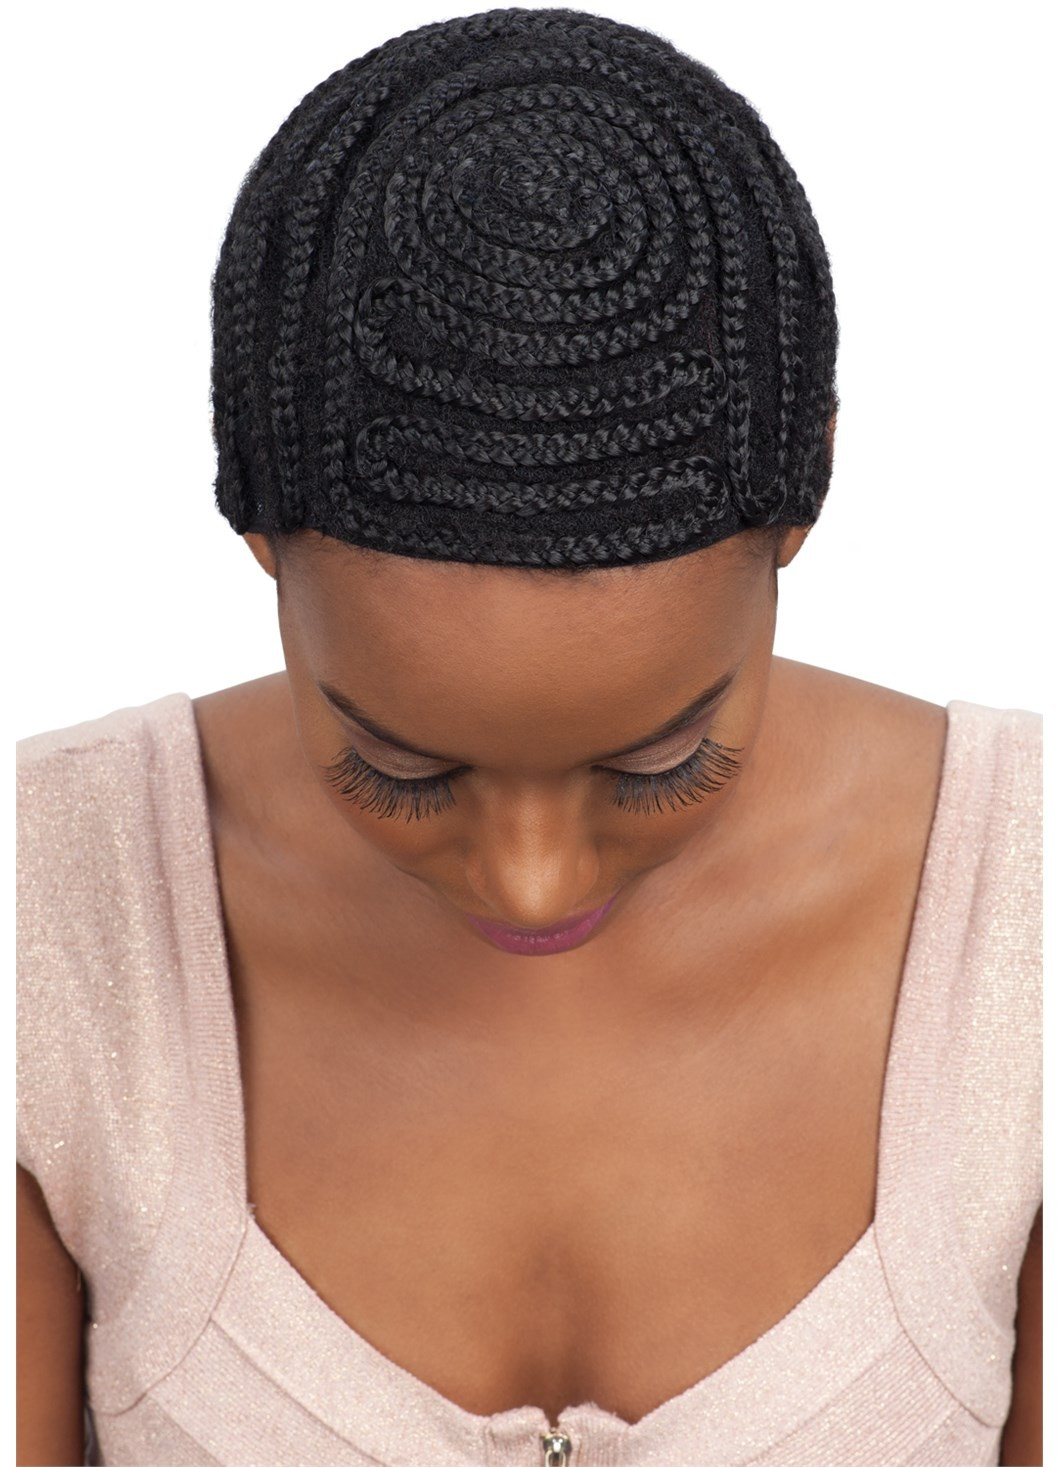 Crochet Braid Pattern to Make Various Projects Model Model Protectif Style Braided Cap Full Bang Pattern For